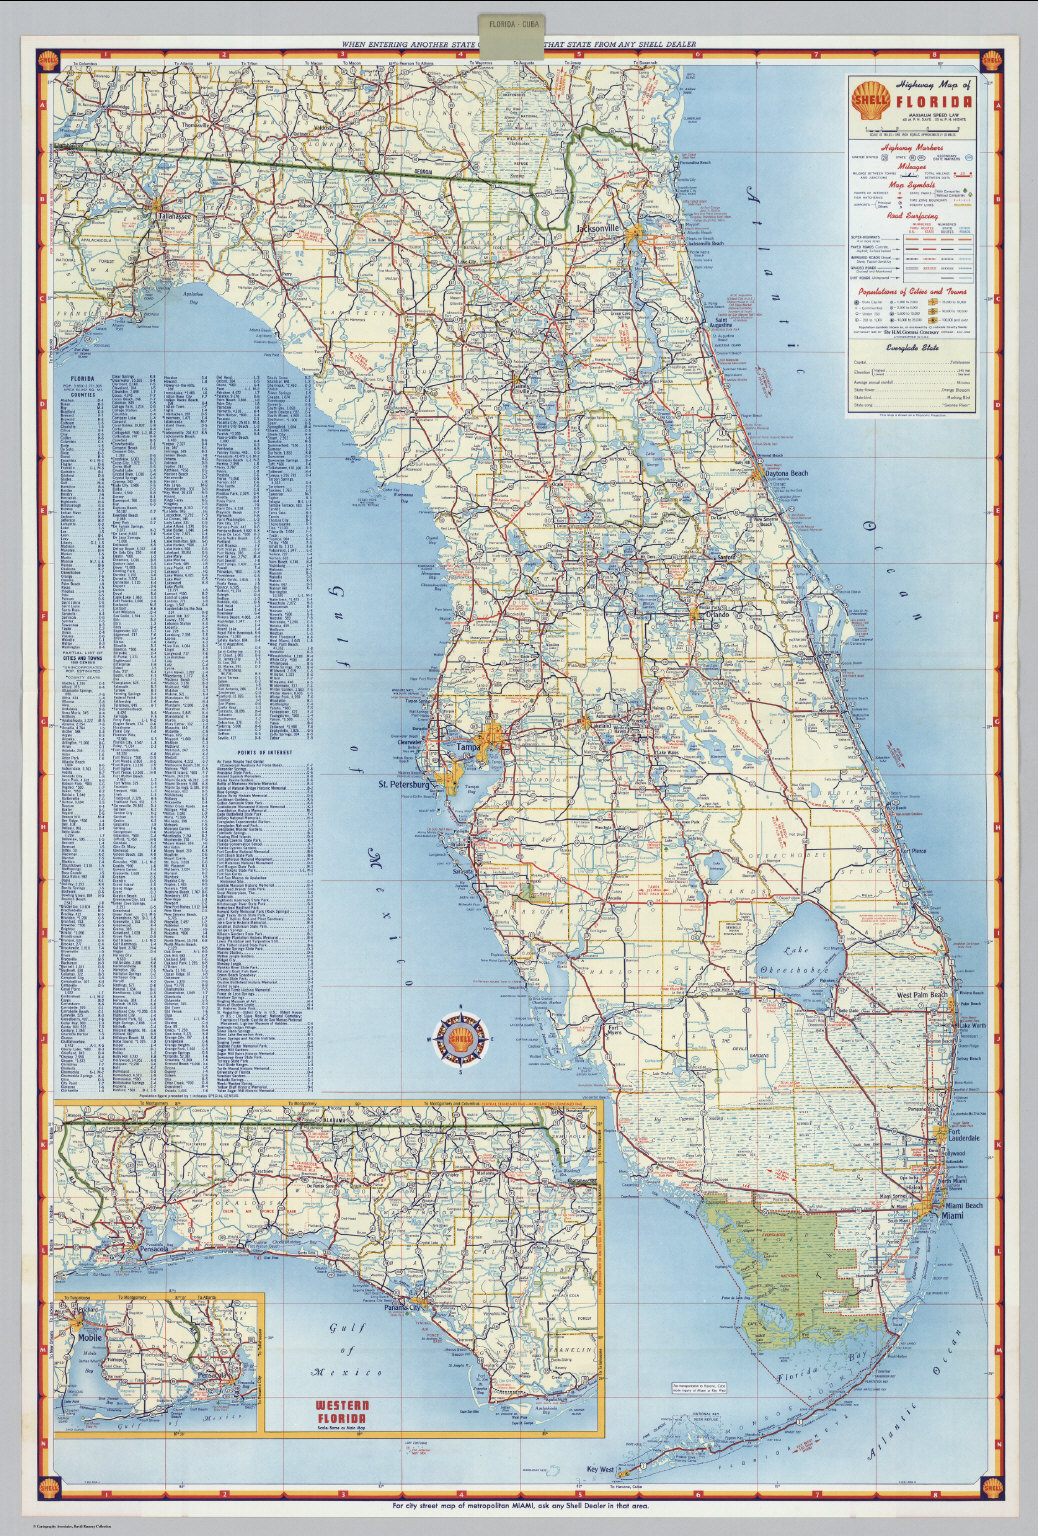 Florida Highway Map.Shell Highway Map Of Florida David Rumsey Historical Map Collection